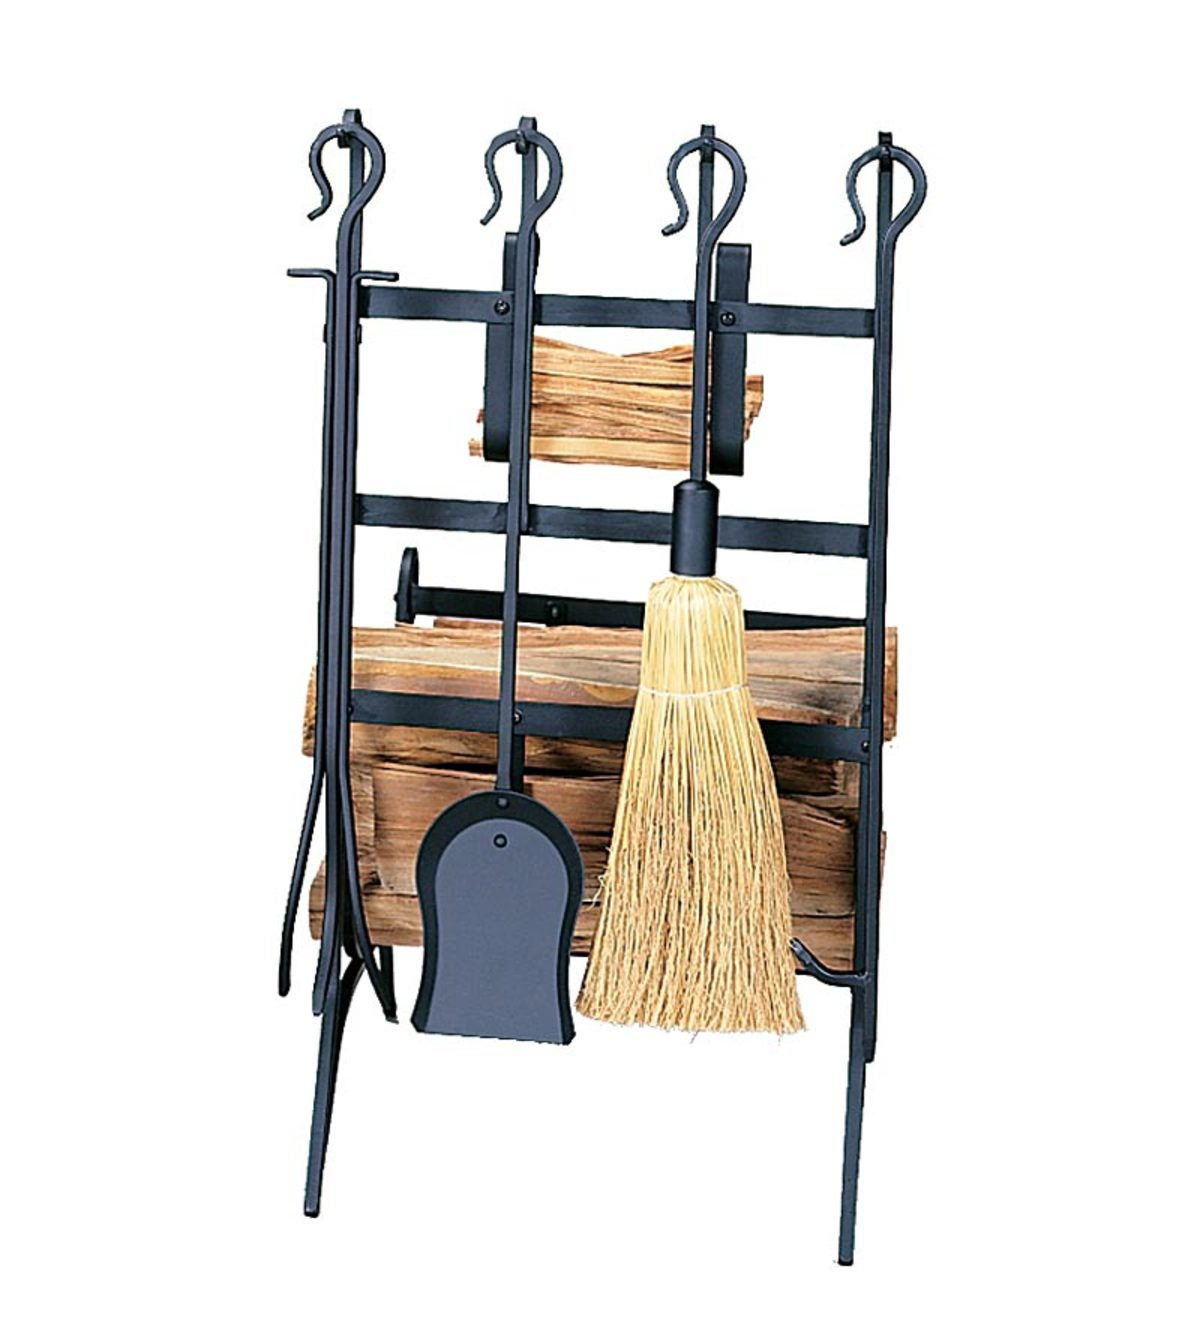 Black Wrought Iron Log Rack With Tools And Fatwood Rack - Black